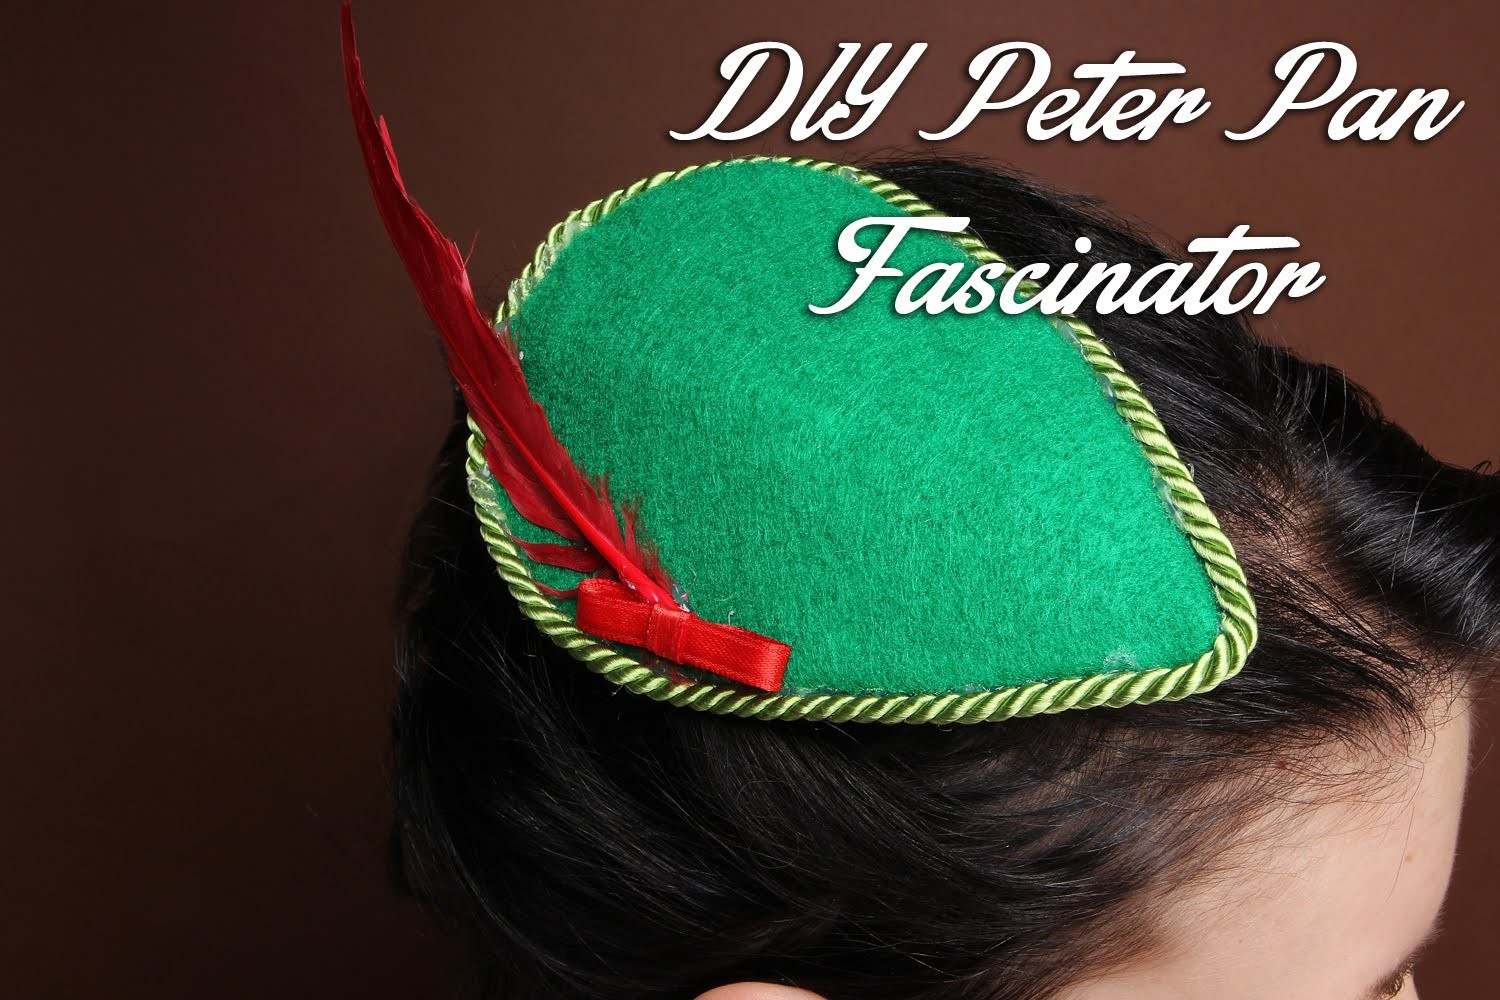 DIY Peter Pan fascinator hat